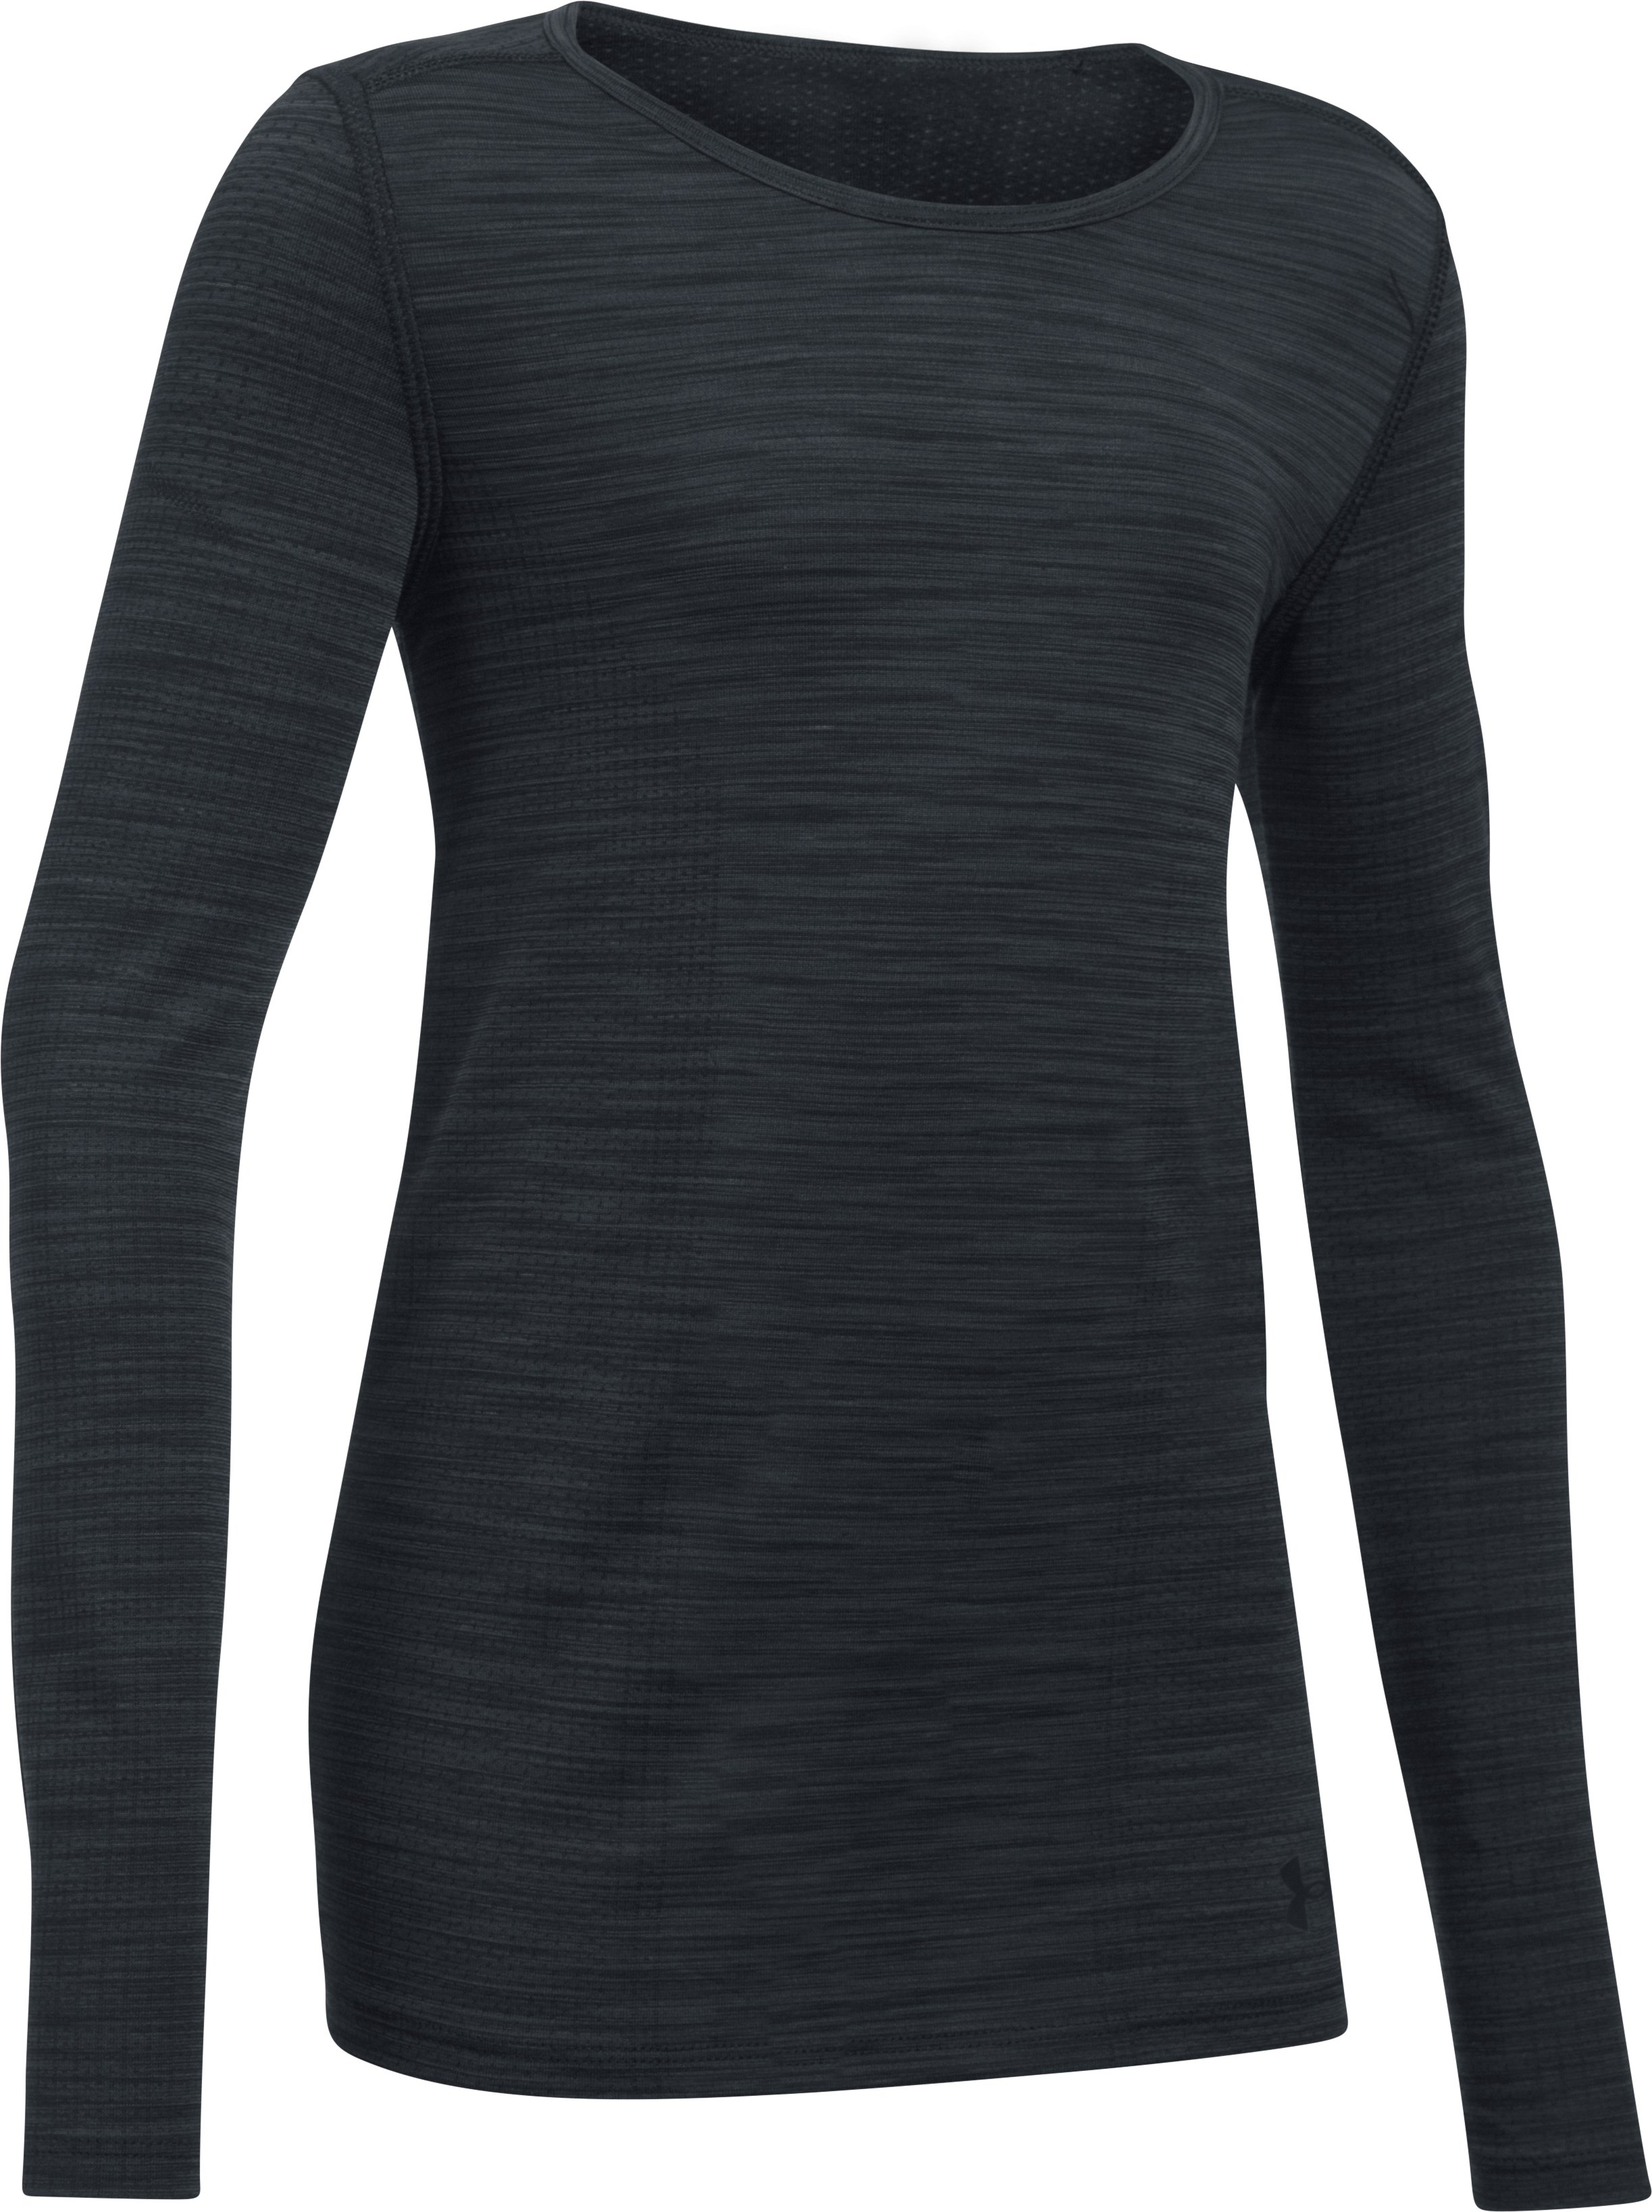 Girls' UA Elevated Seamless Long Sleeve, Black